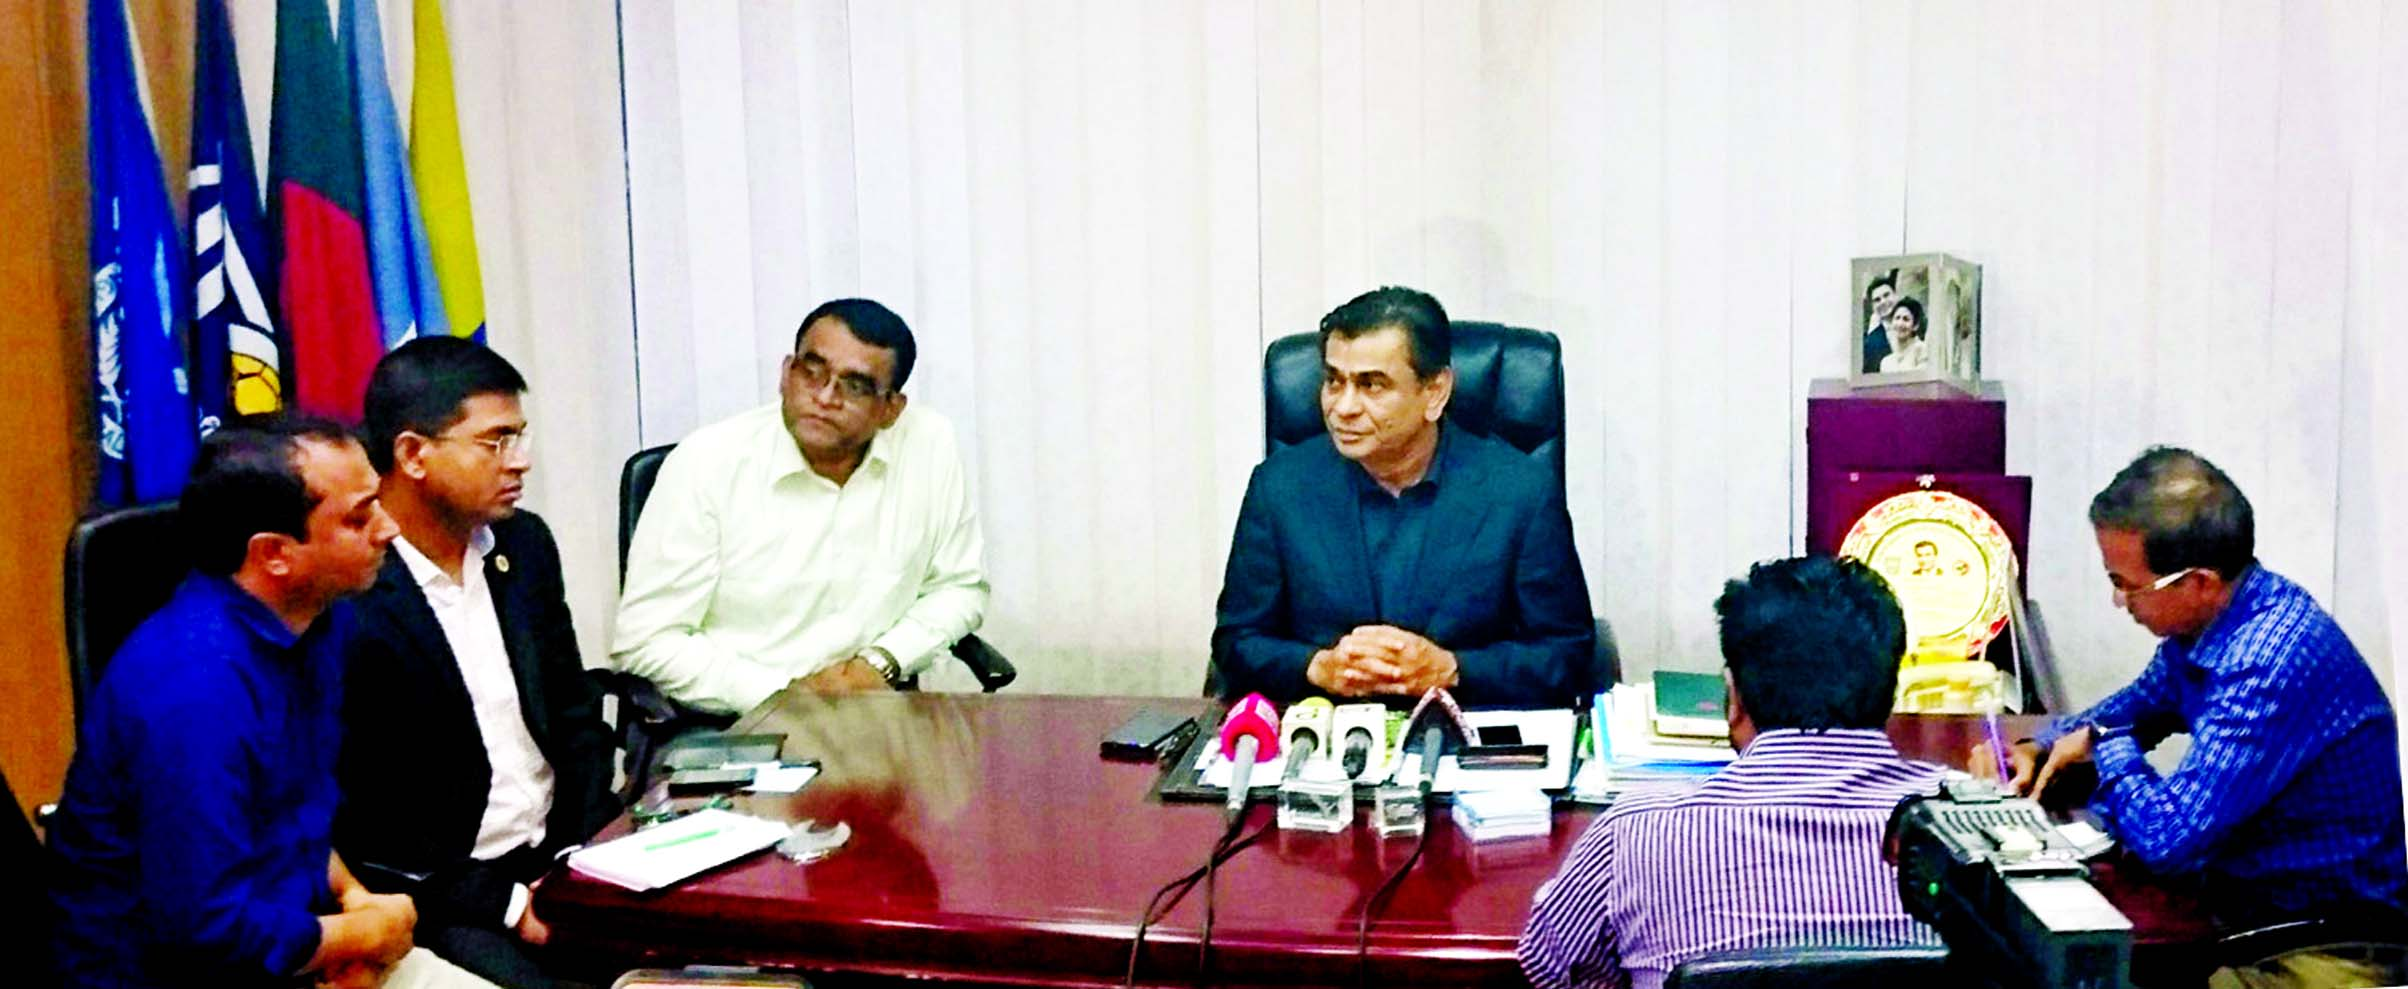 President of Bangladesh Football Federation (BFF) Kazi Salahuddin talking to the journalists at the BFF House on Tuesday after taking part in a meeting at the Ministry of Youth and Sports.